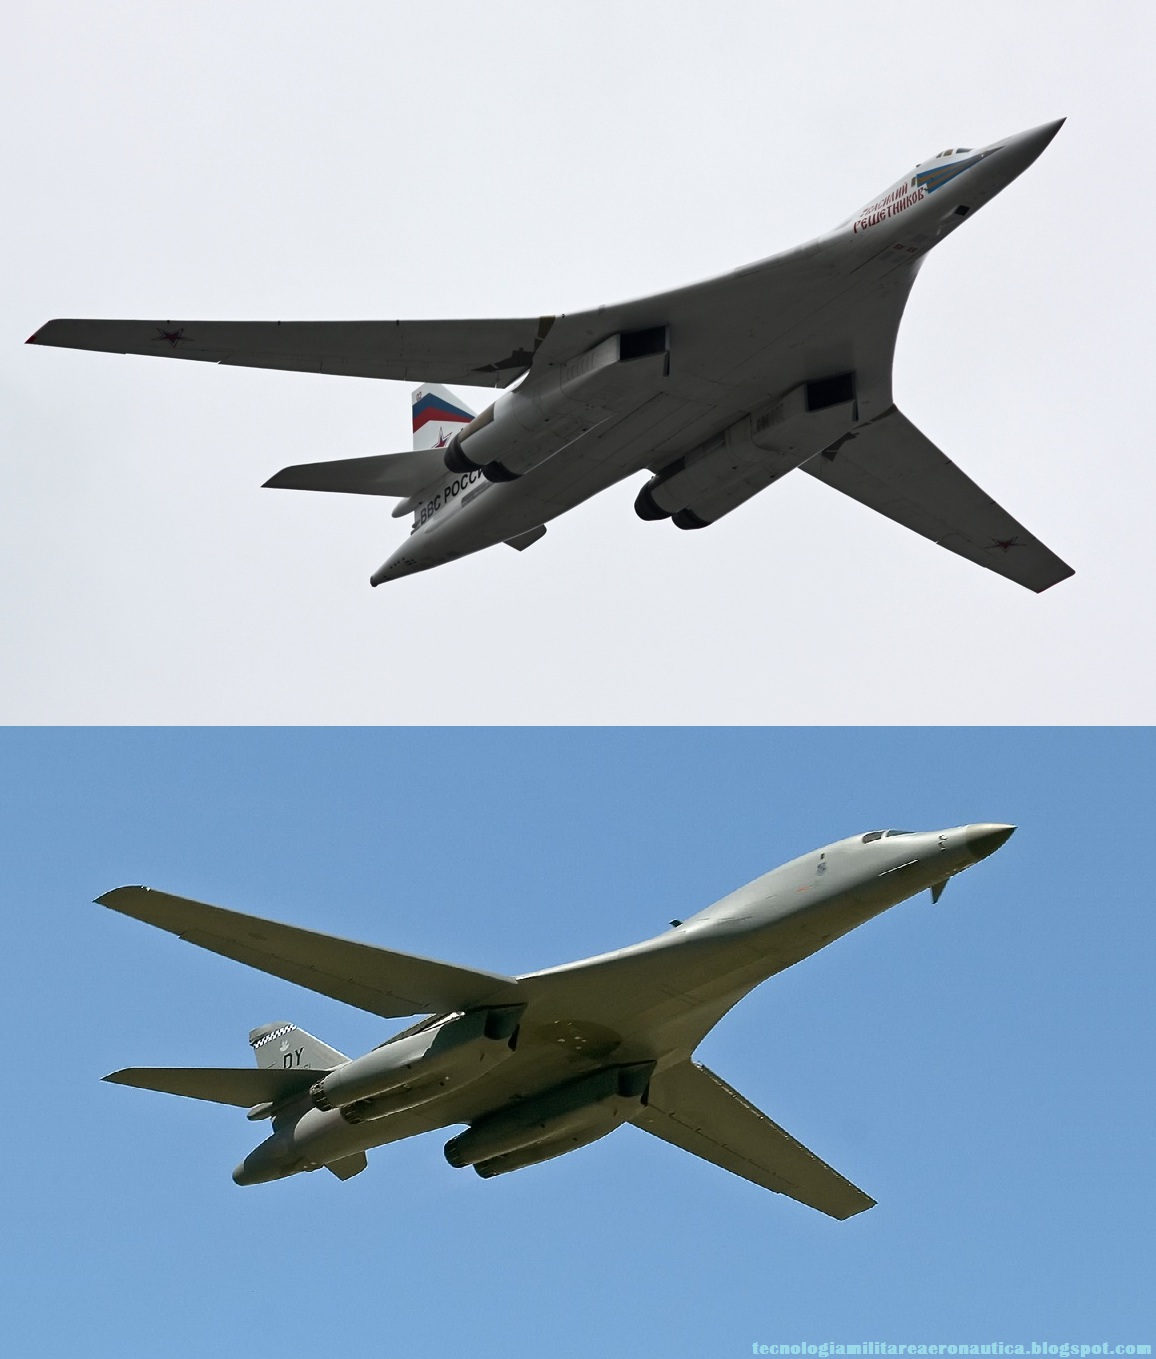 TU-160 Blackjack being refueled from an IL-78 Midas ... B1 Lancer Vs Tu 160